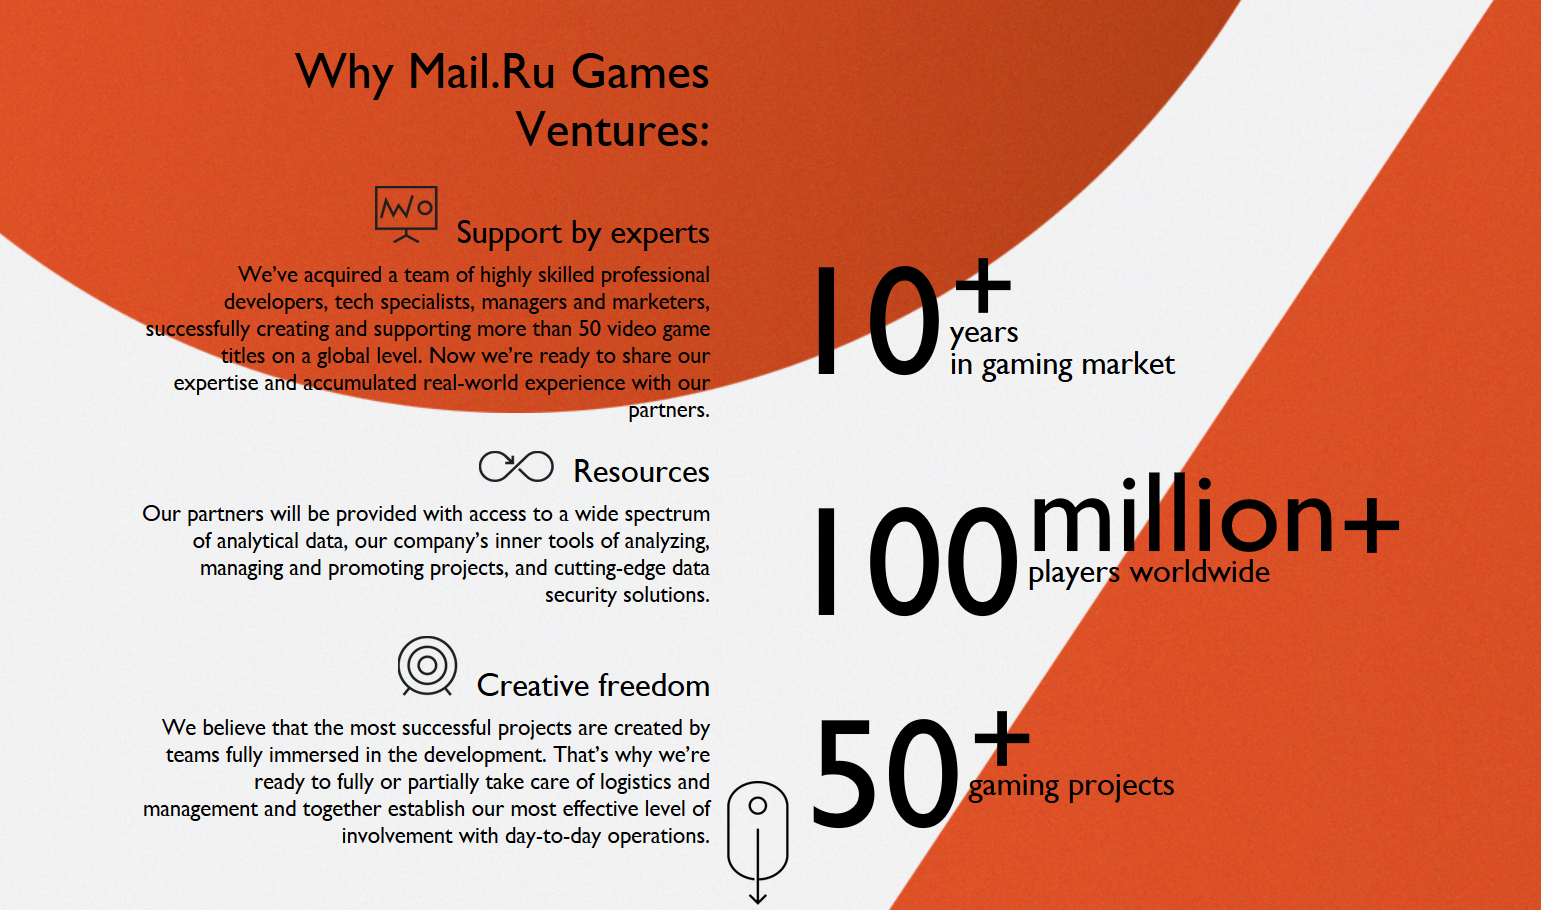 Mail.Ru Announces up to $100 Million for Investment - #GTUSA 3